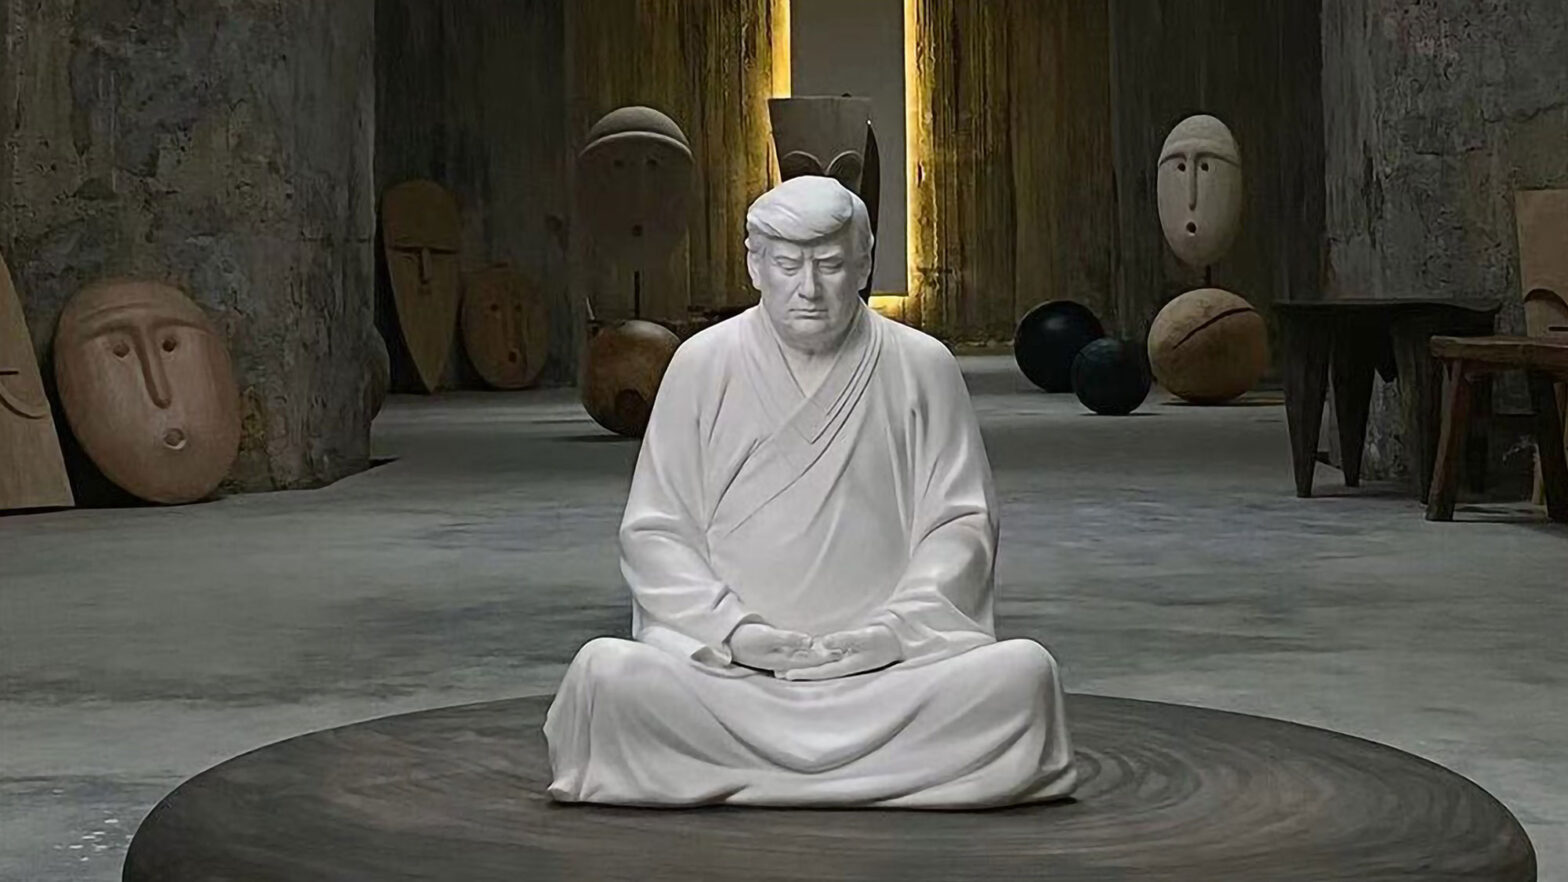 Donald Trump Buddha Statue in China